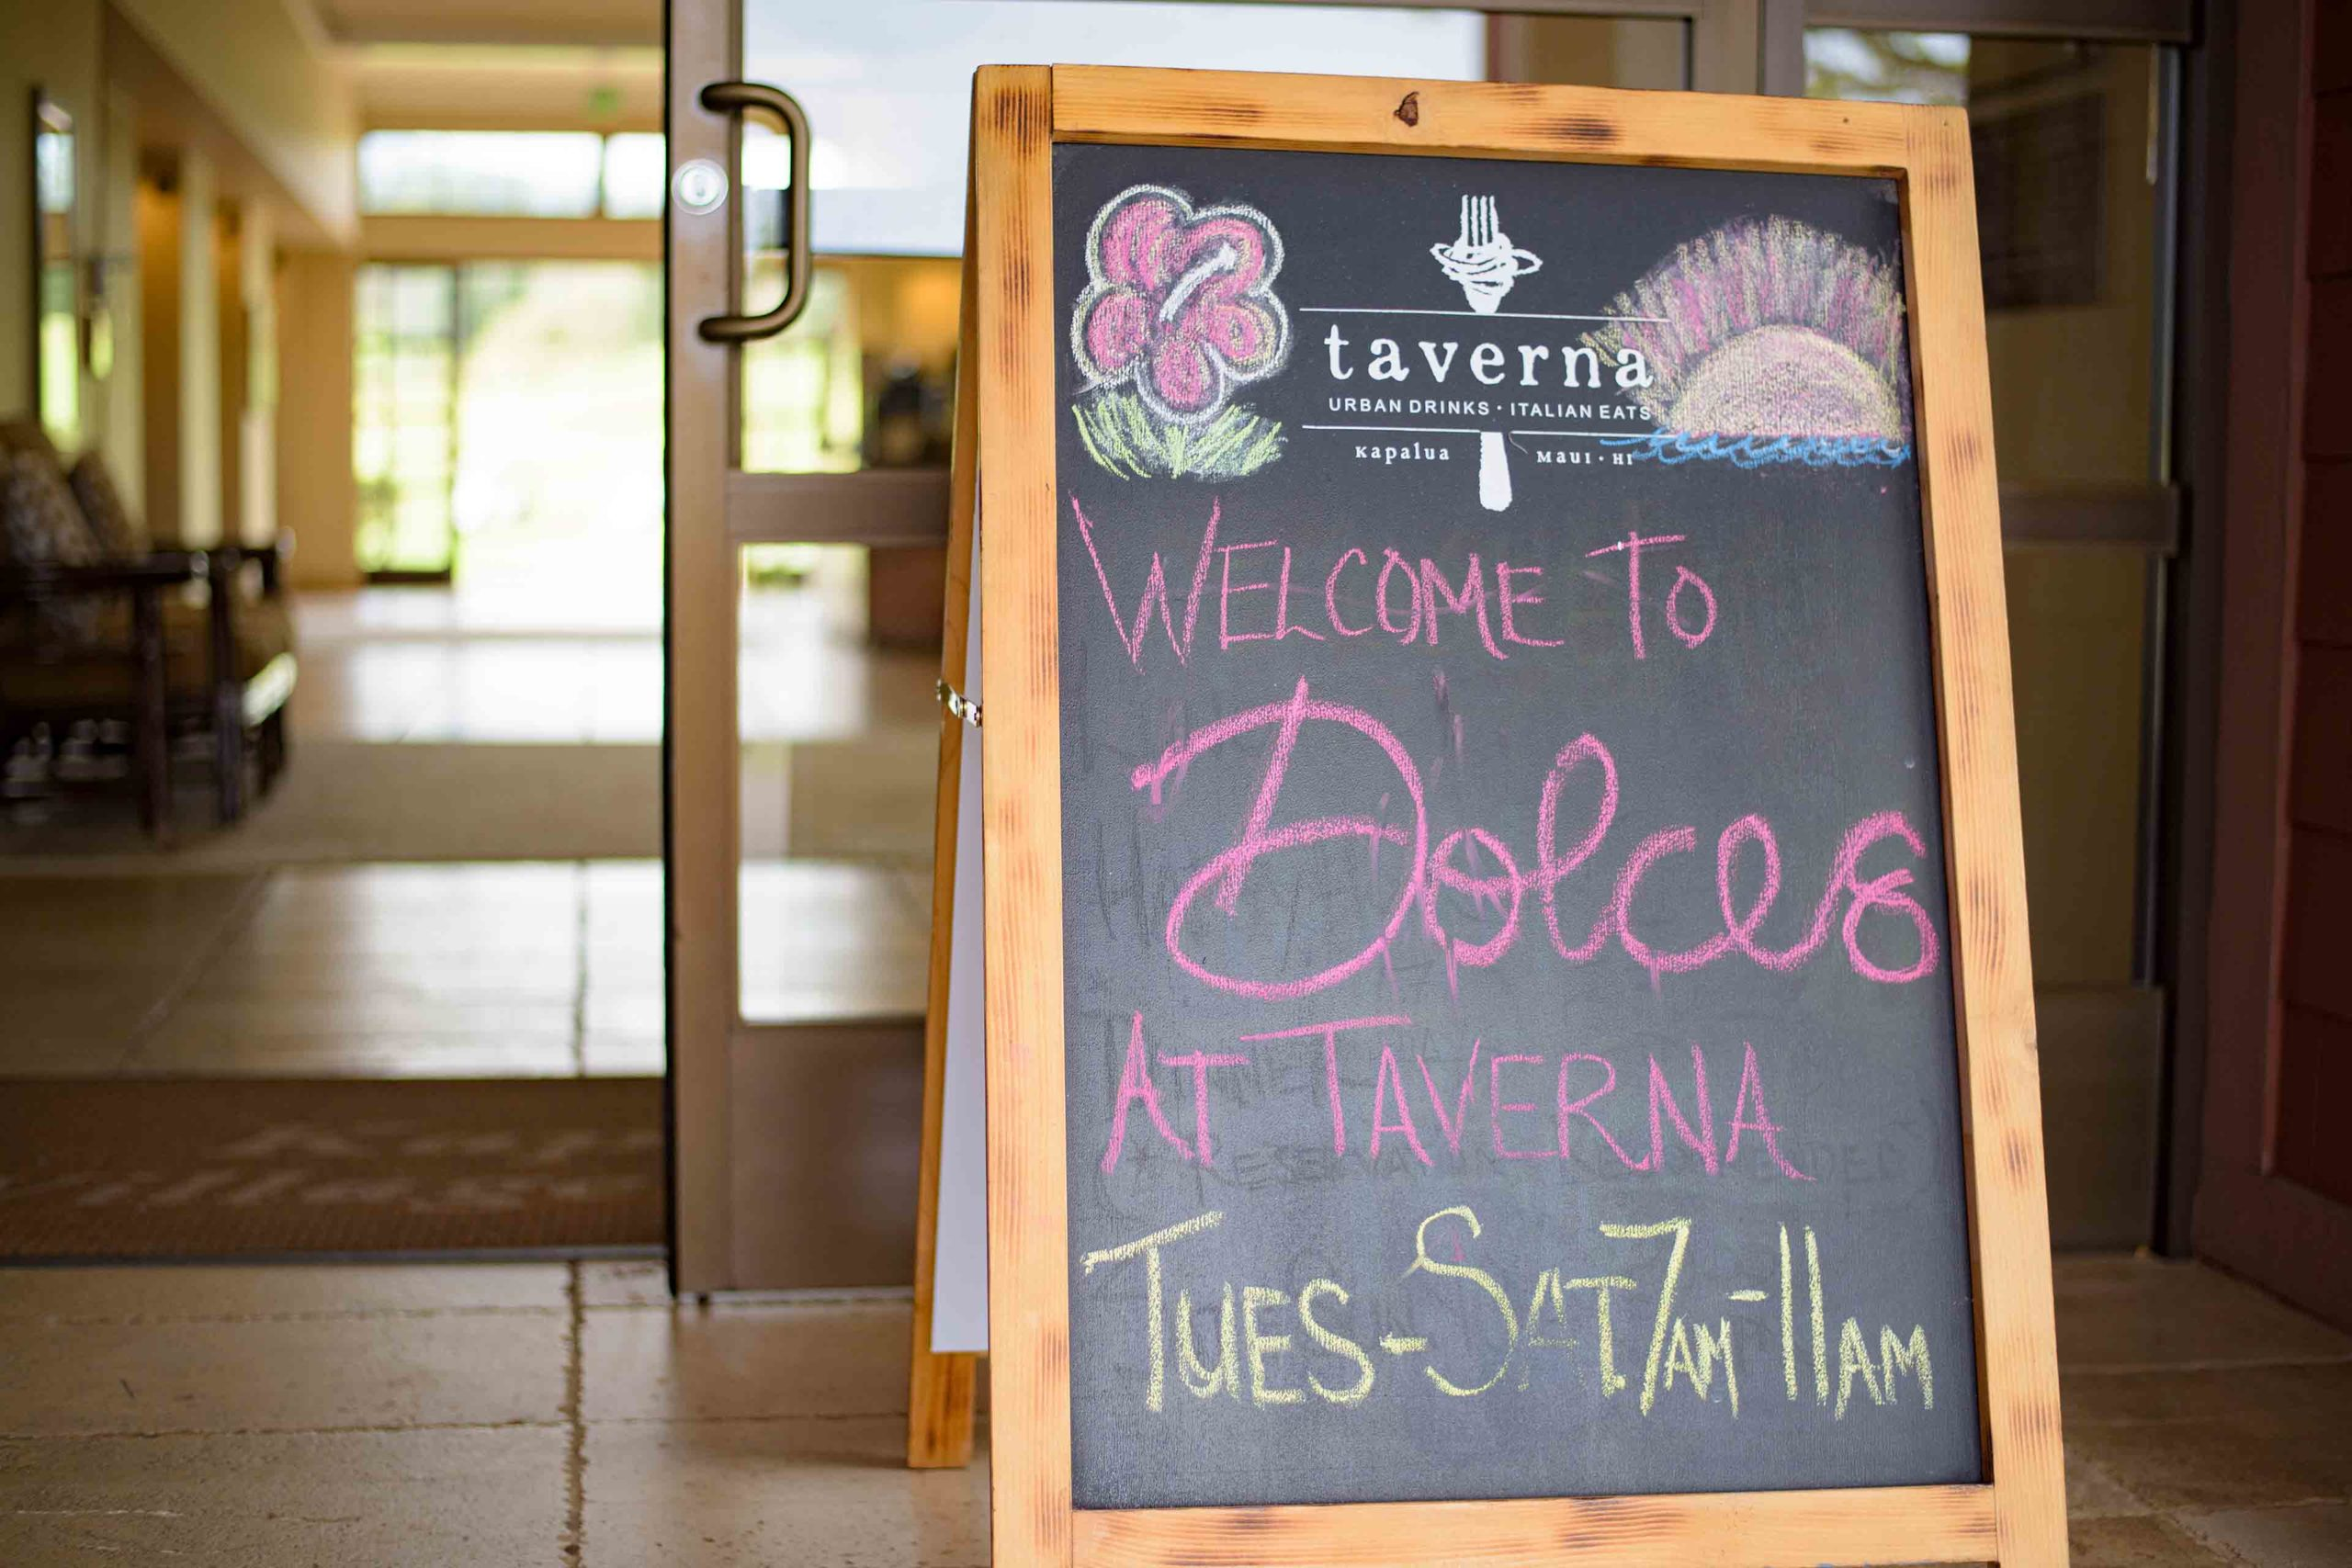 Welcome to Dolces at Taverna Kapalua